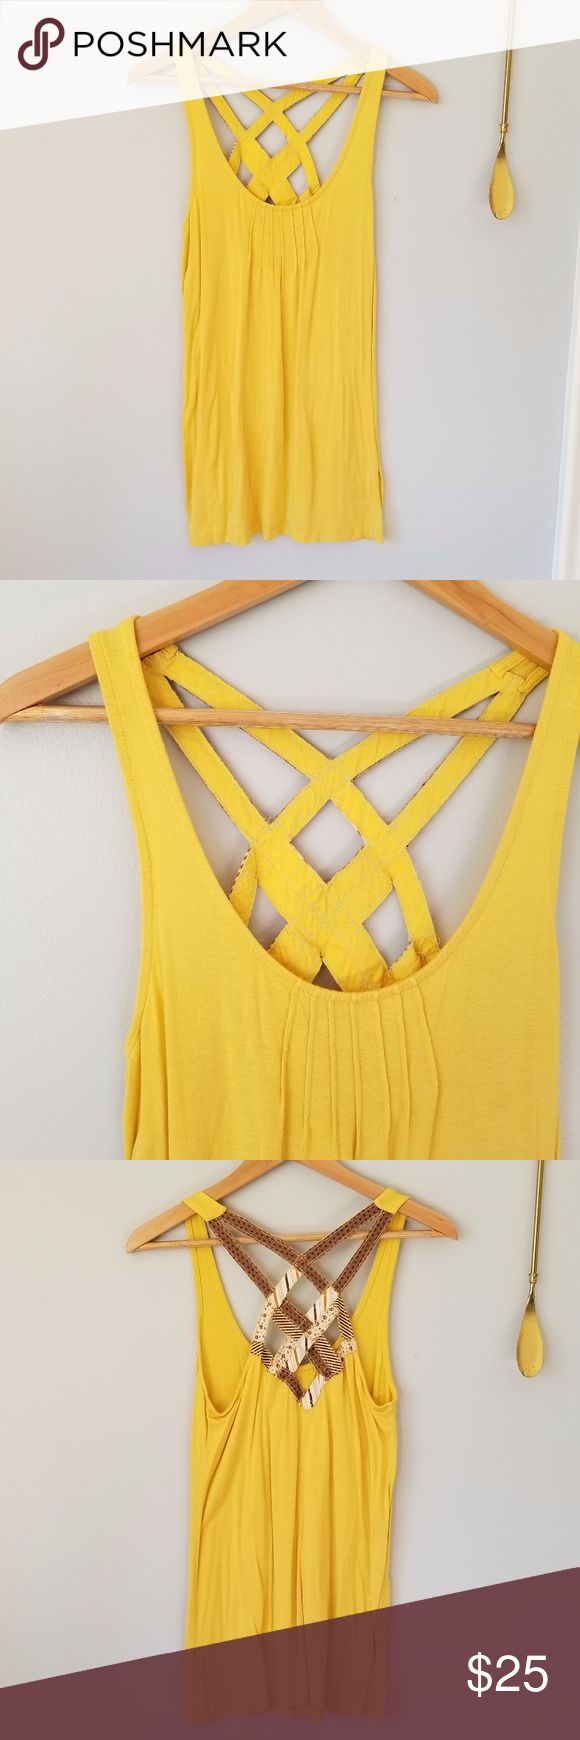 """Urban Outfitters Yellow Tank w/ Criss Cross Straps Urban Outfitters Yellow Tank w/ Criss Cross Straps//kimchi & blue//The straps on the back have fun brown patterned fabric overlaying the yellow fabric//There are pleats on the bust to make it more flattering//Fabric is very stretchy so can be worn tight or loose//Bust: 18"""", Length: 25.5""""//Materials: 95% rayon, 5% spandex//Size: US Women's Medium//Worn once Urban Outfitters Tops Tank Tops"""